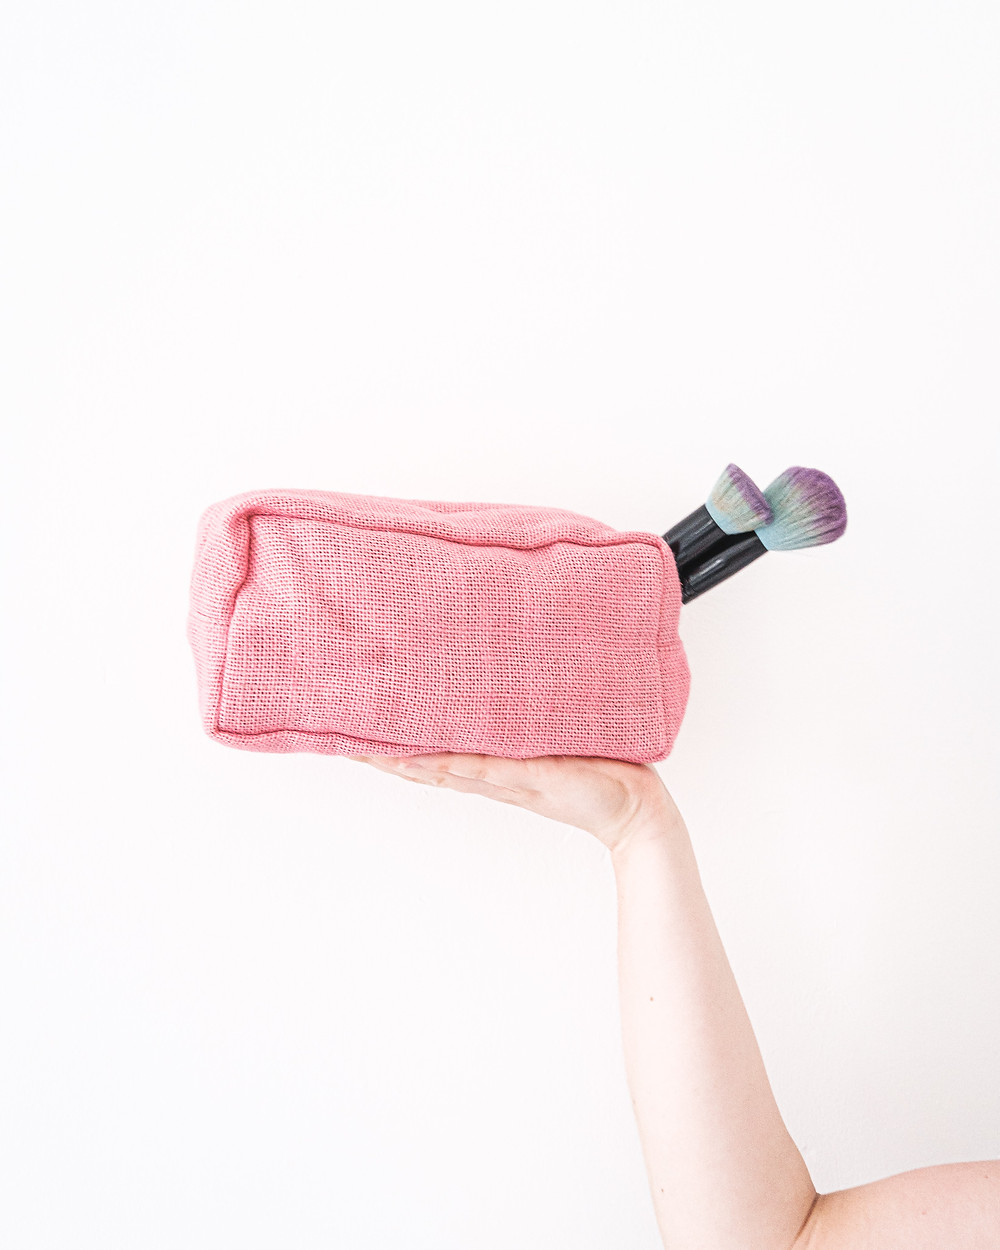 Pink Jute Makeup Bag from Ecofully eco-friendly swap for plastic free July